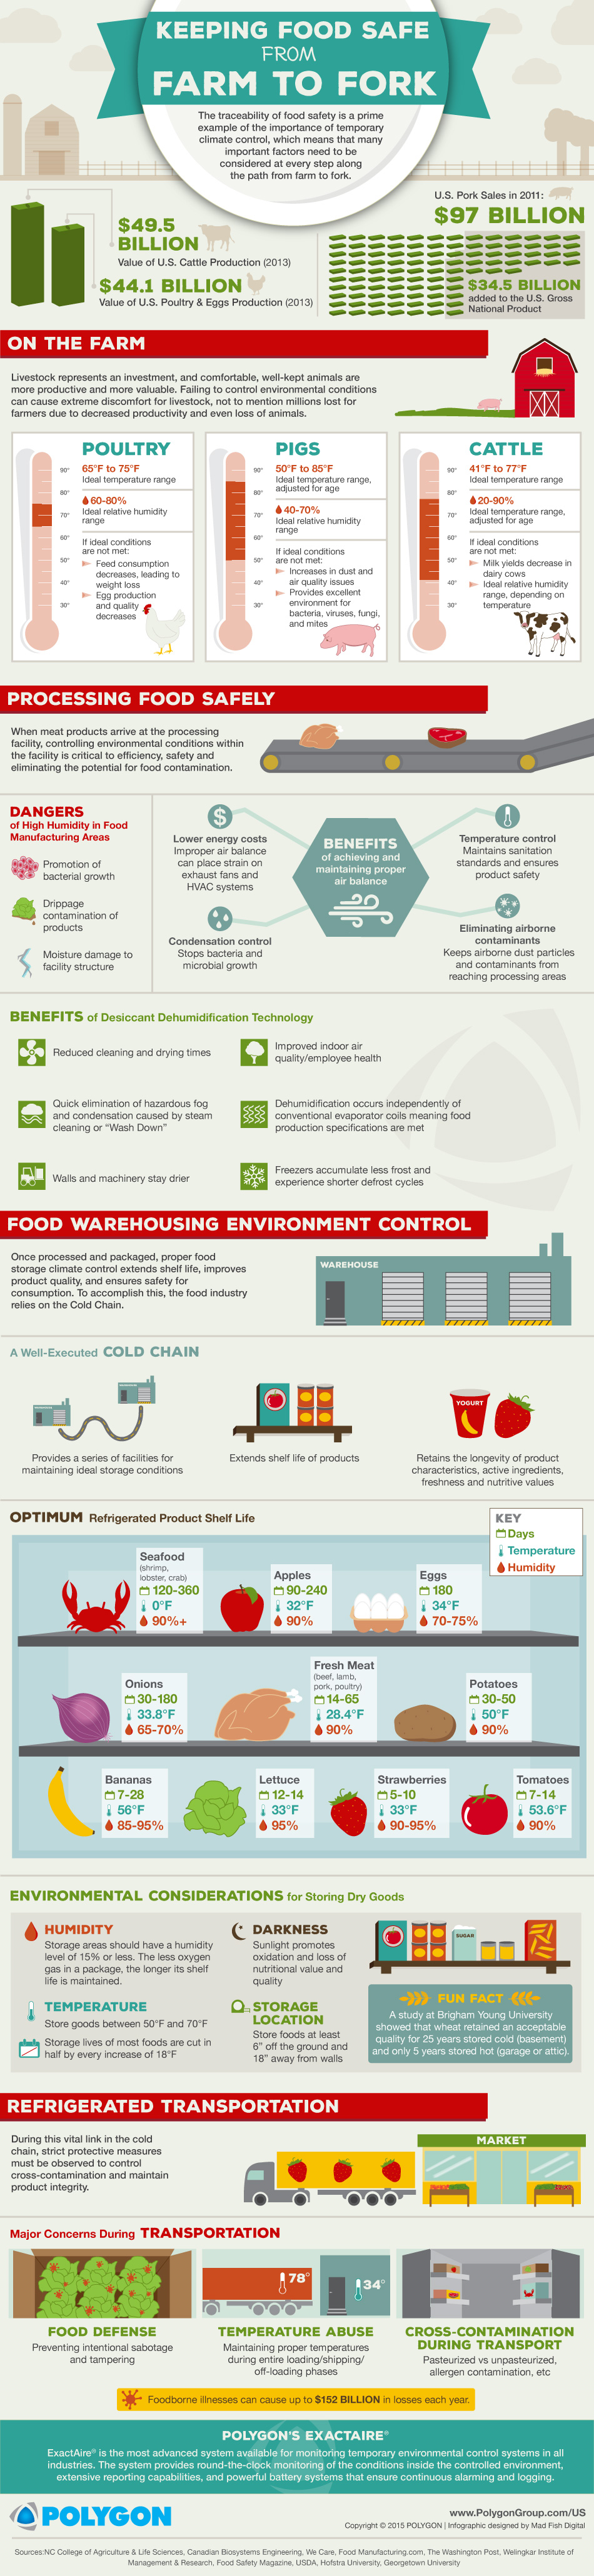 Polygon_Food-Industry_Infographic_Feb-2015 (1)